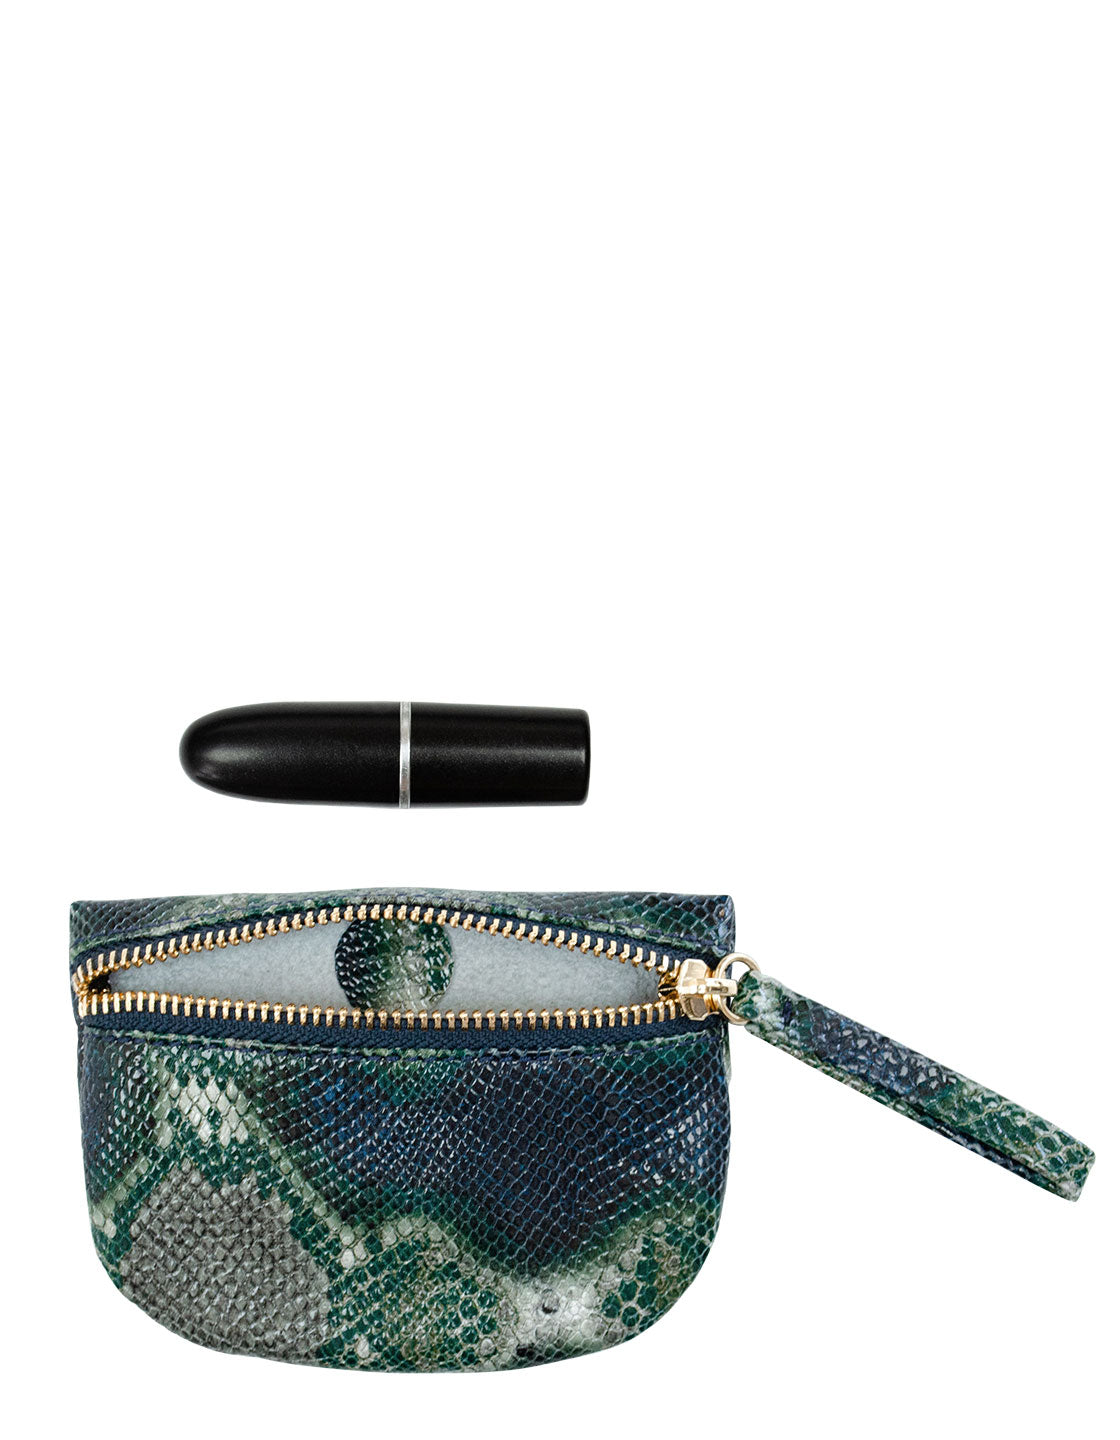 MVP Pouch in Green Multi Python